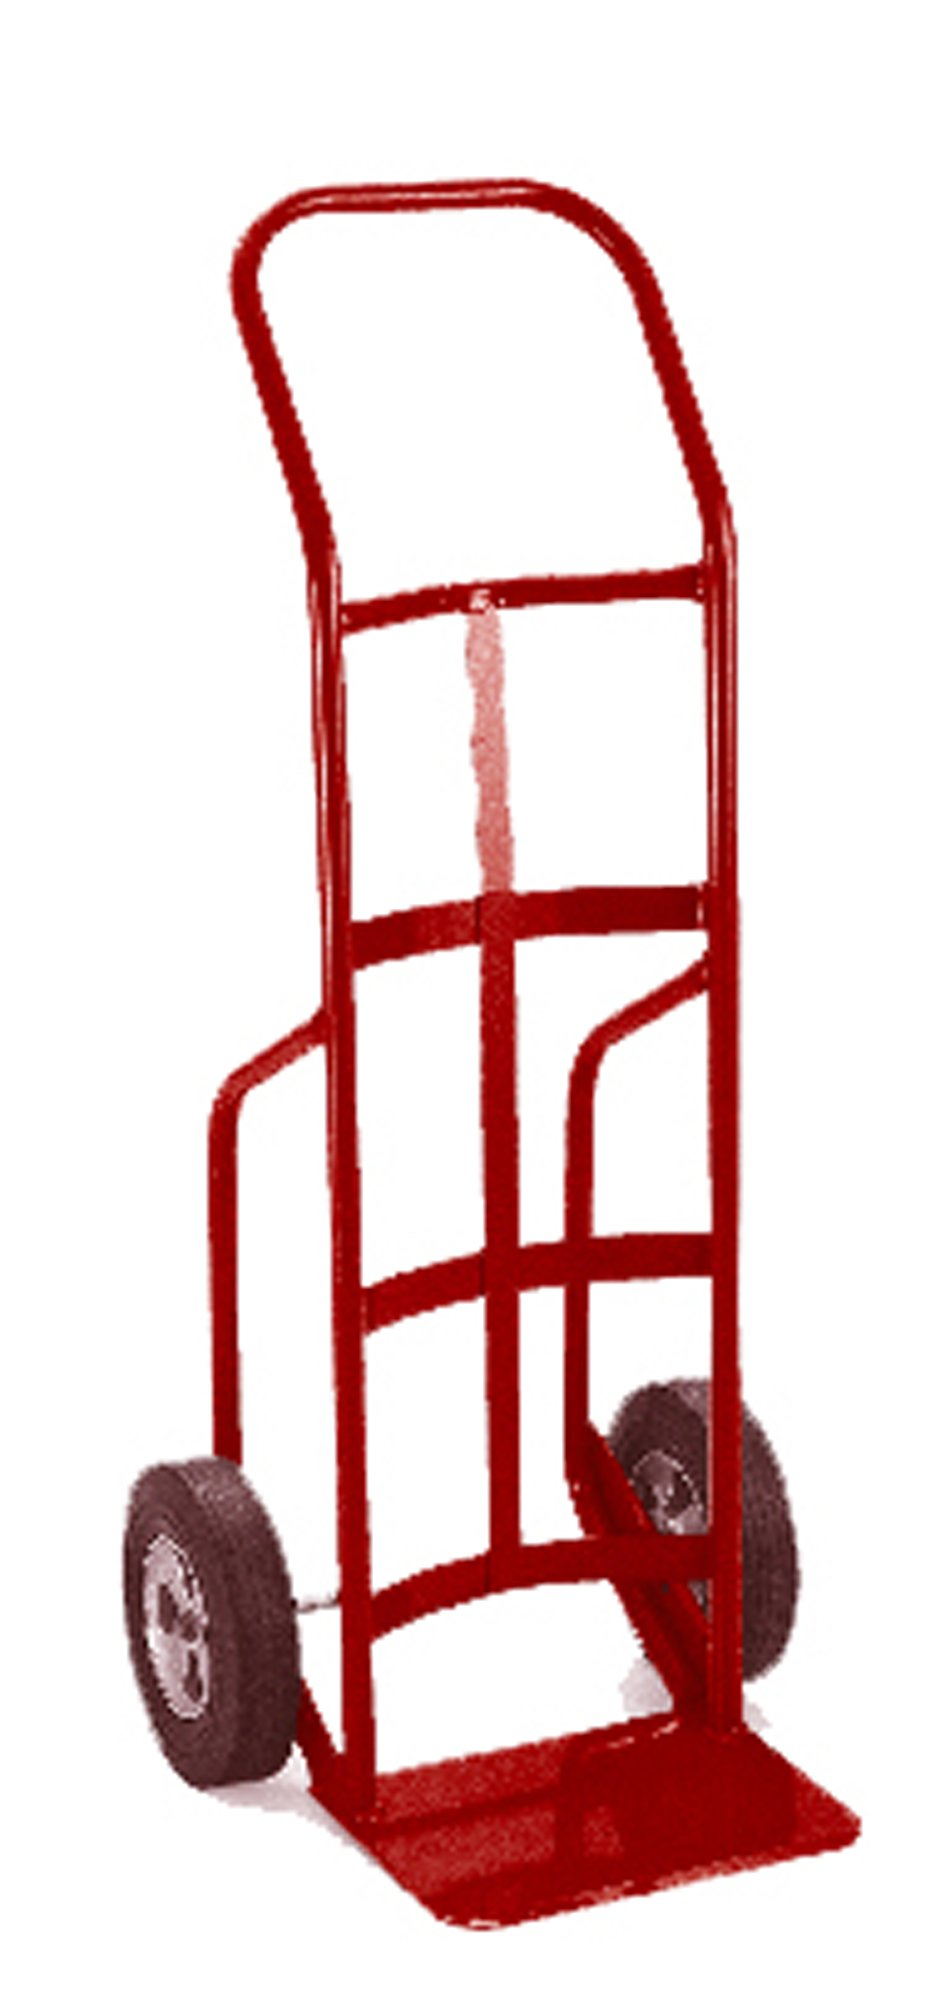 Lockwood HTS-33007 Steel Hand Truck with Curved Back and Kickback Handle, Solid Rubber Wheels, 700 lbs Load Capacity, 50'' Height, 20'' Length x 18'' Width